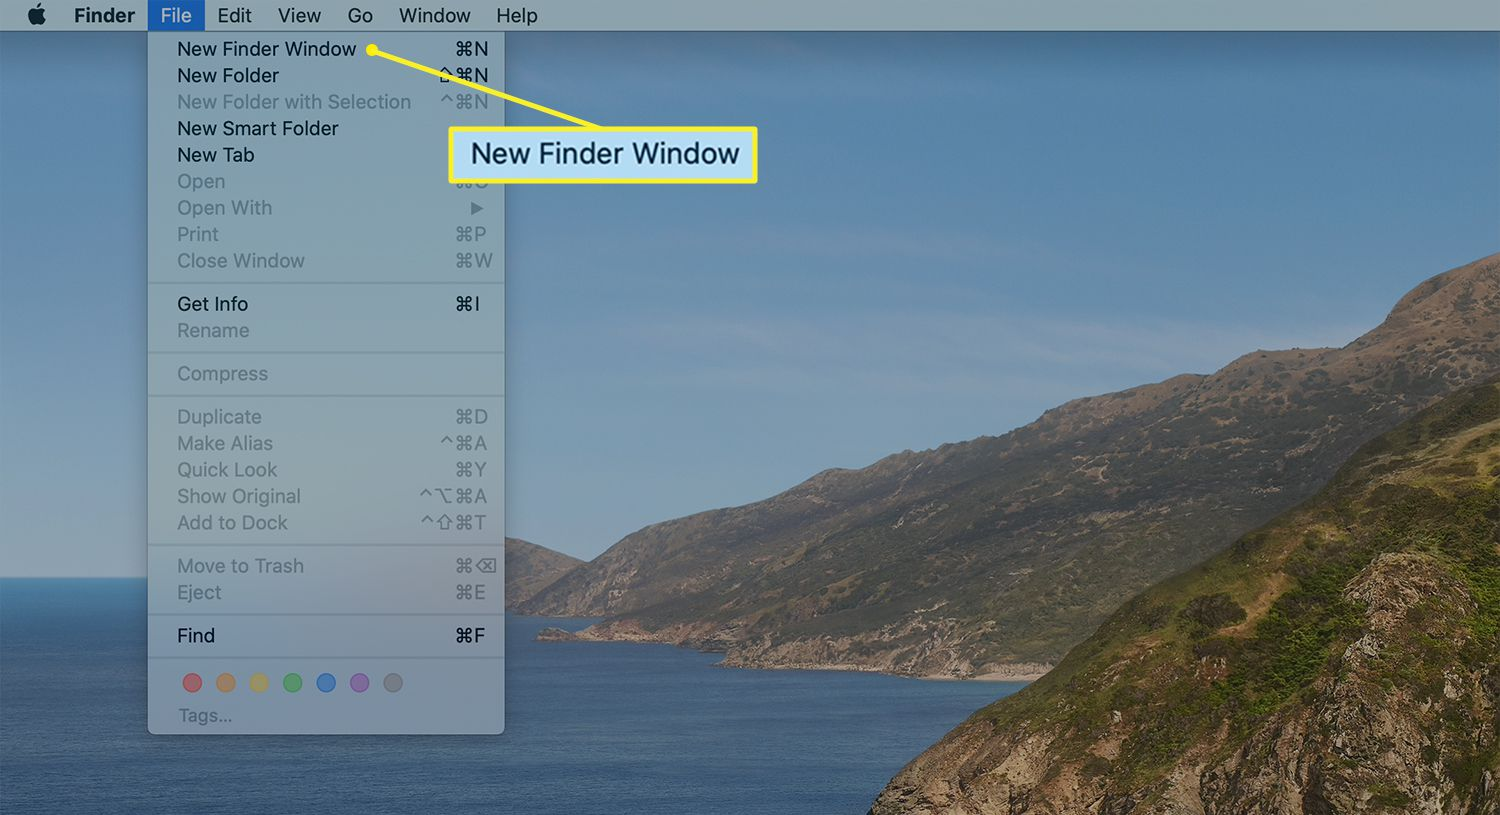 Location for opening a new Finder Window from Finder menu bar